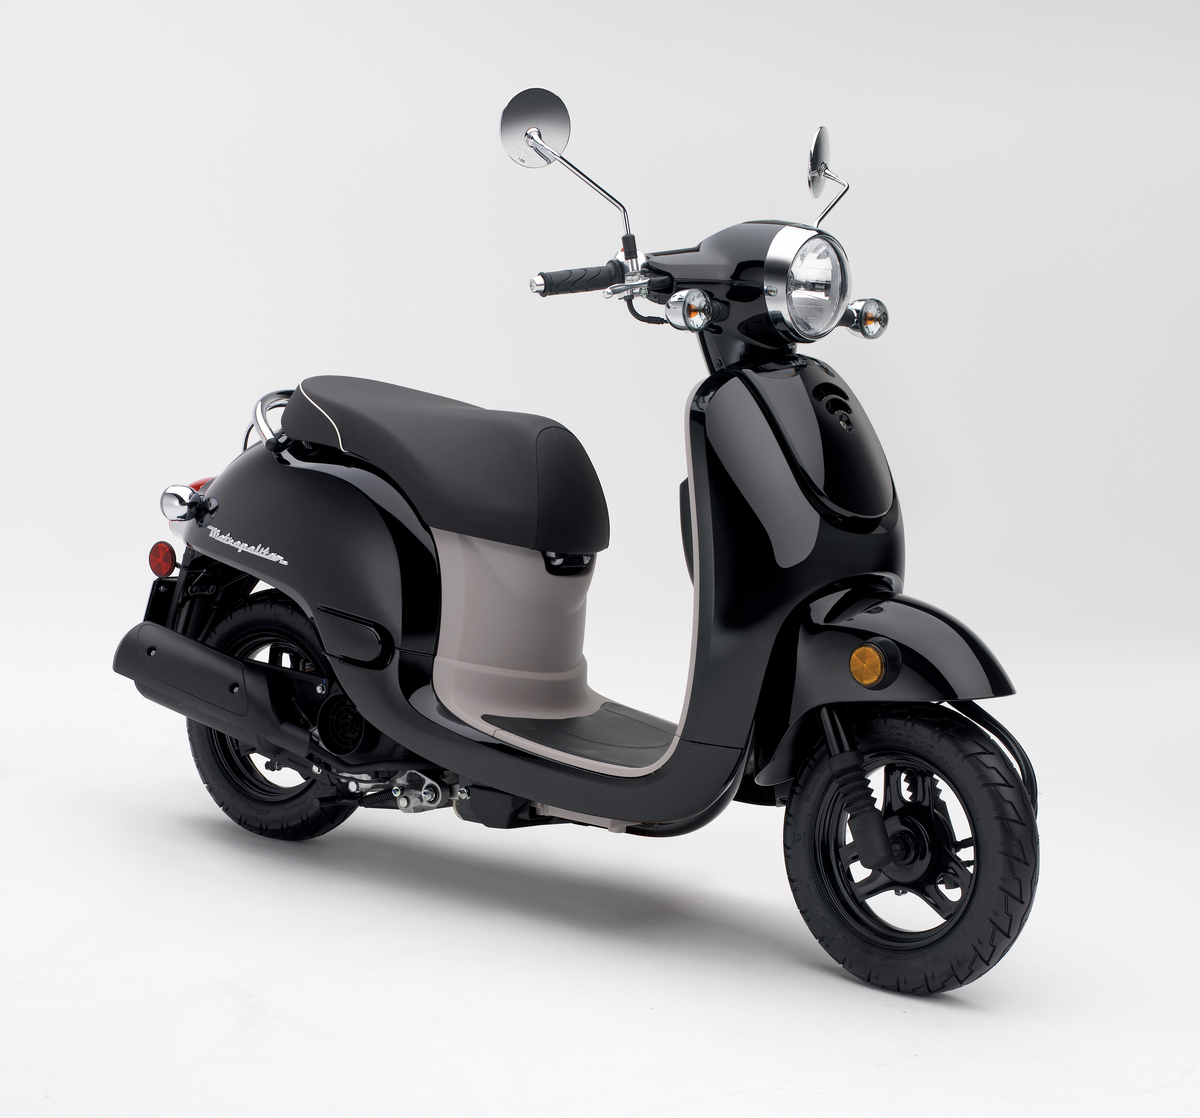 2013 Honda Metropolitan | Top Sd